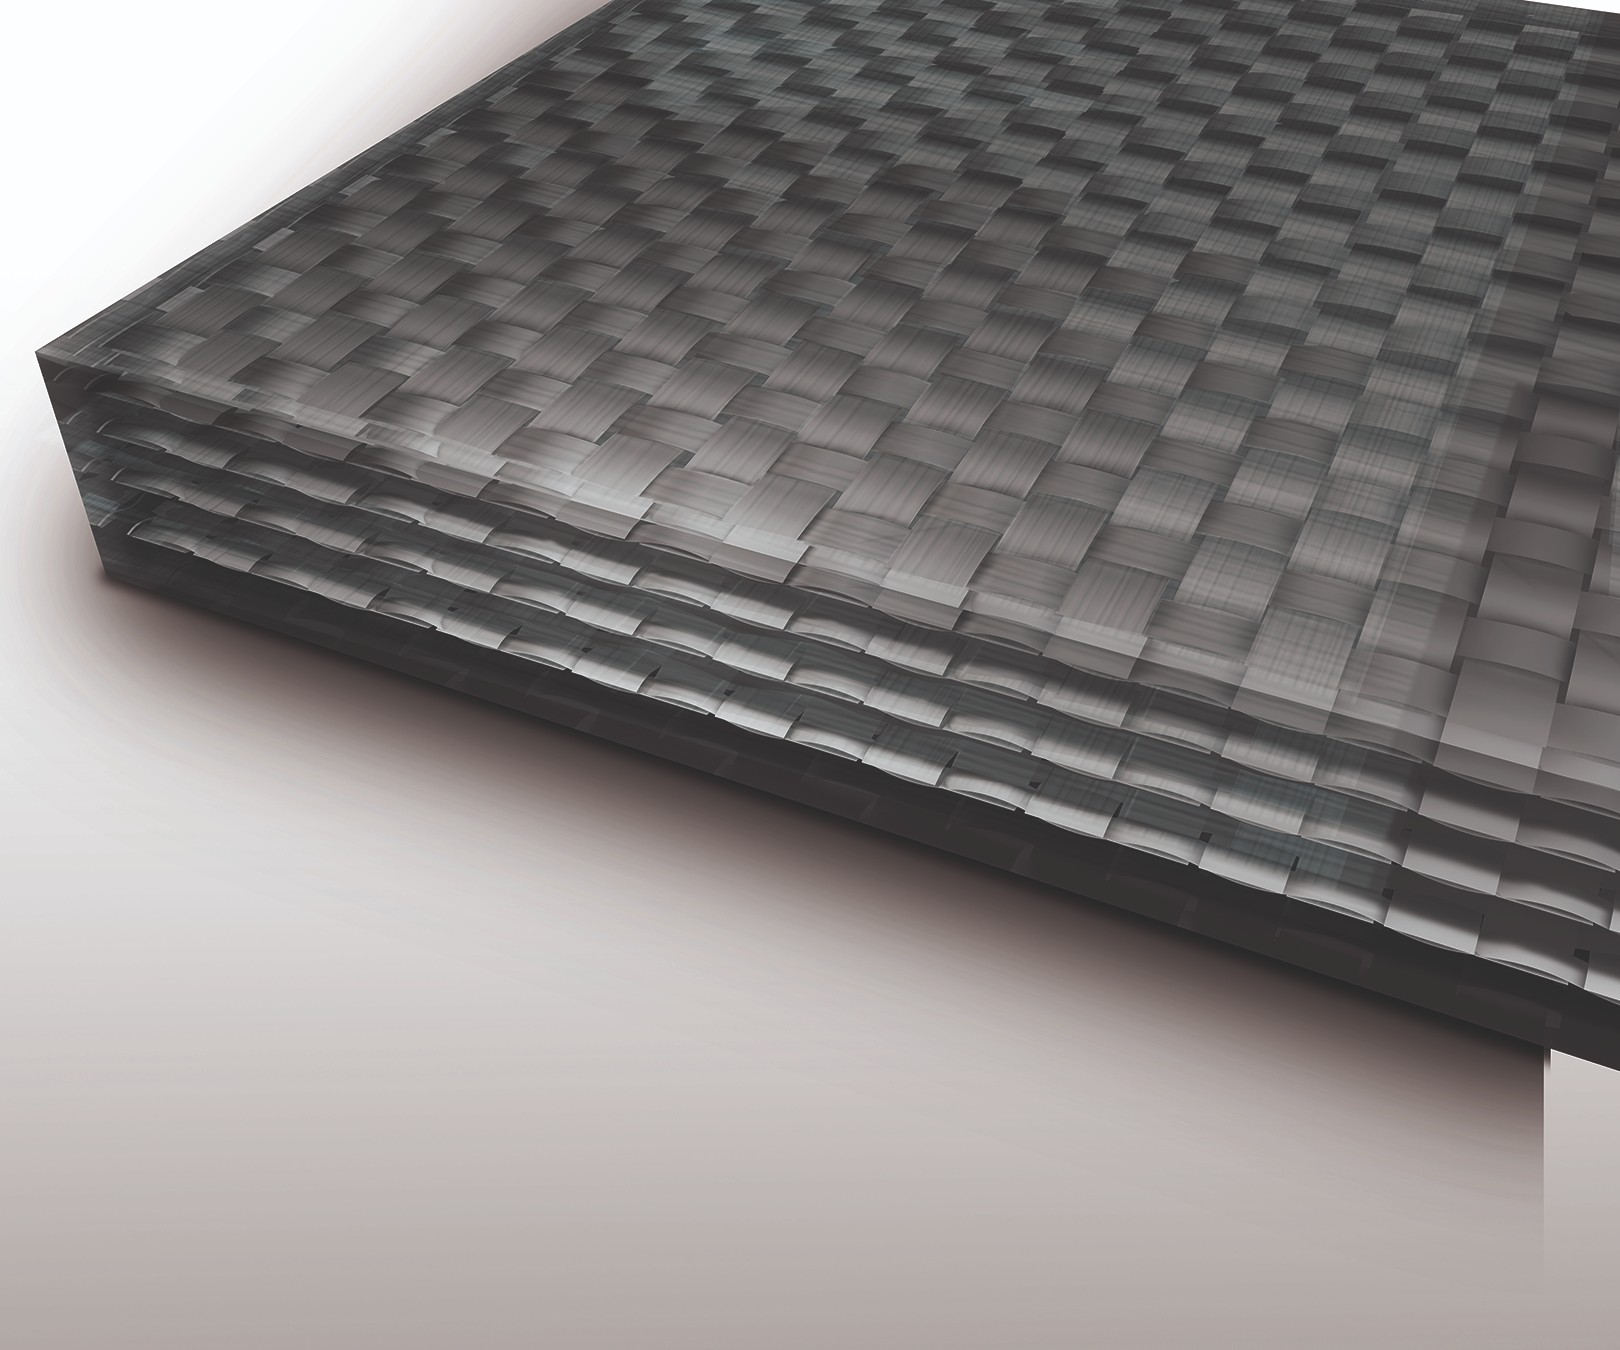 Tepex composite sheet technology